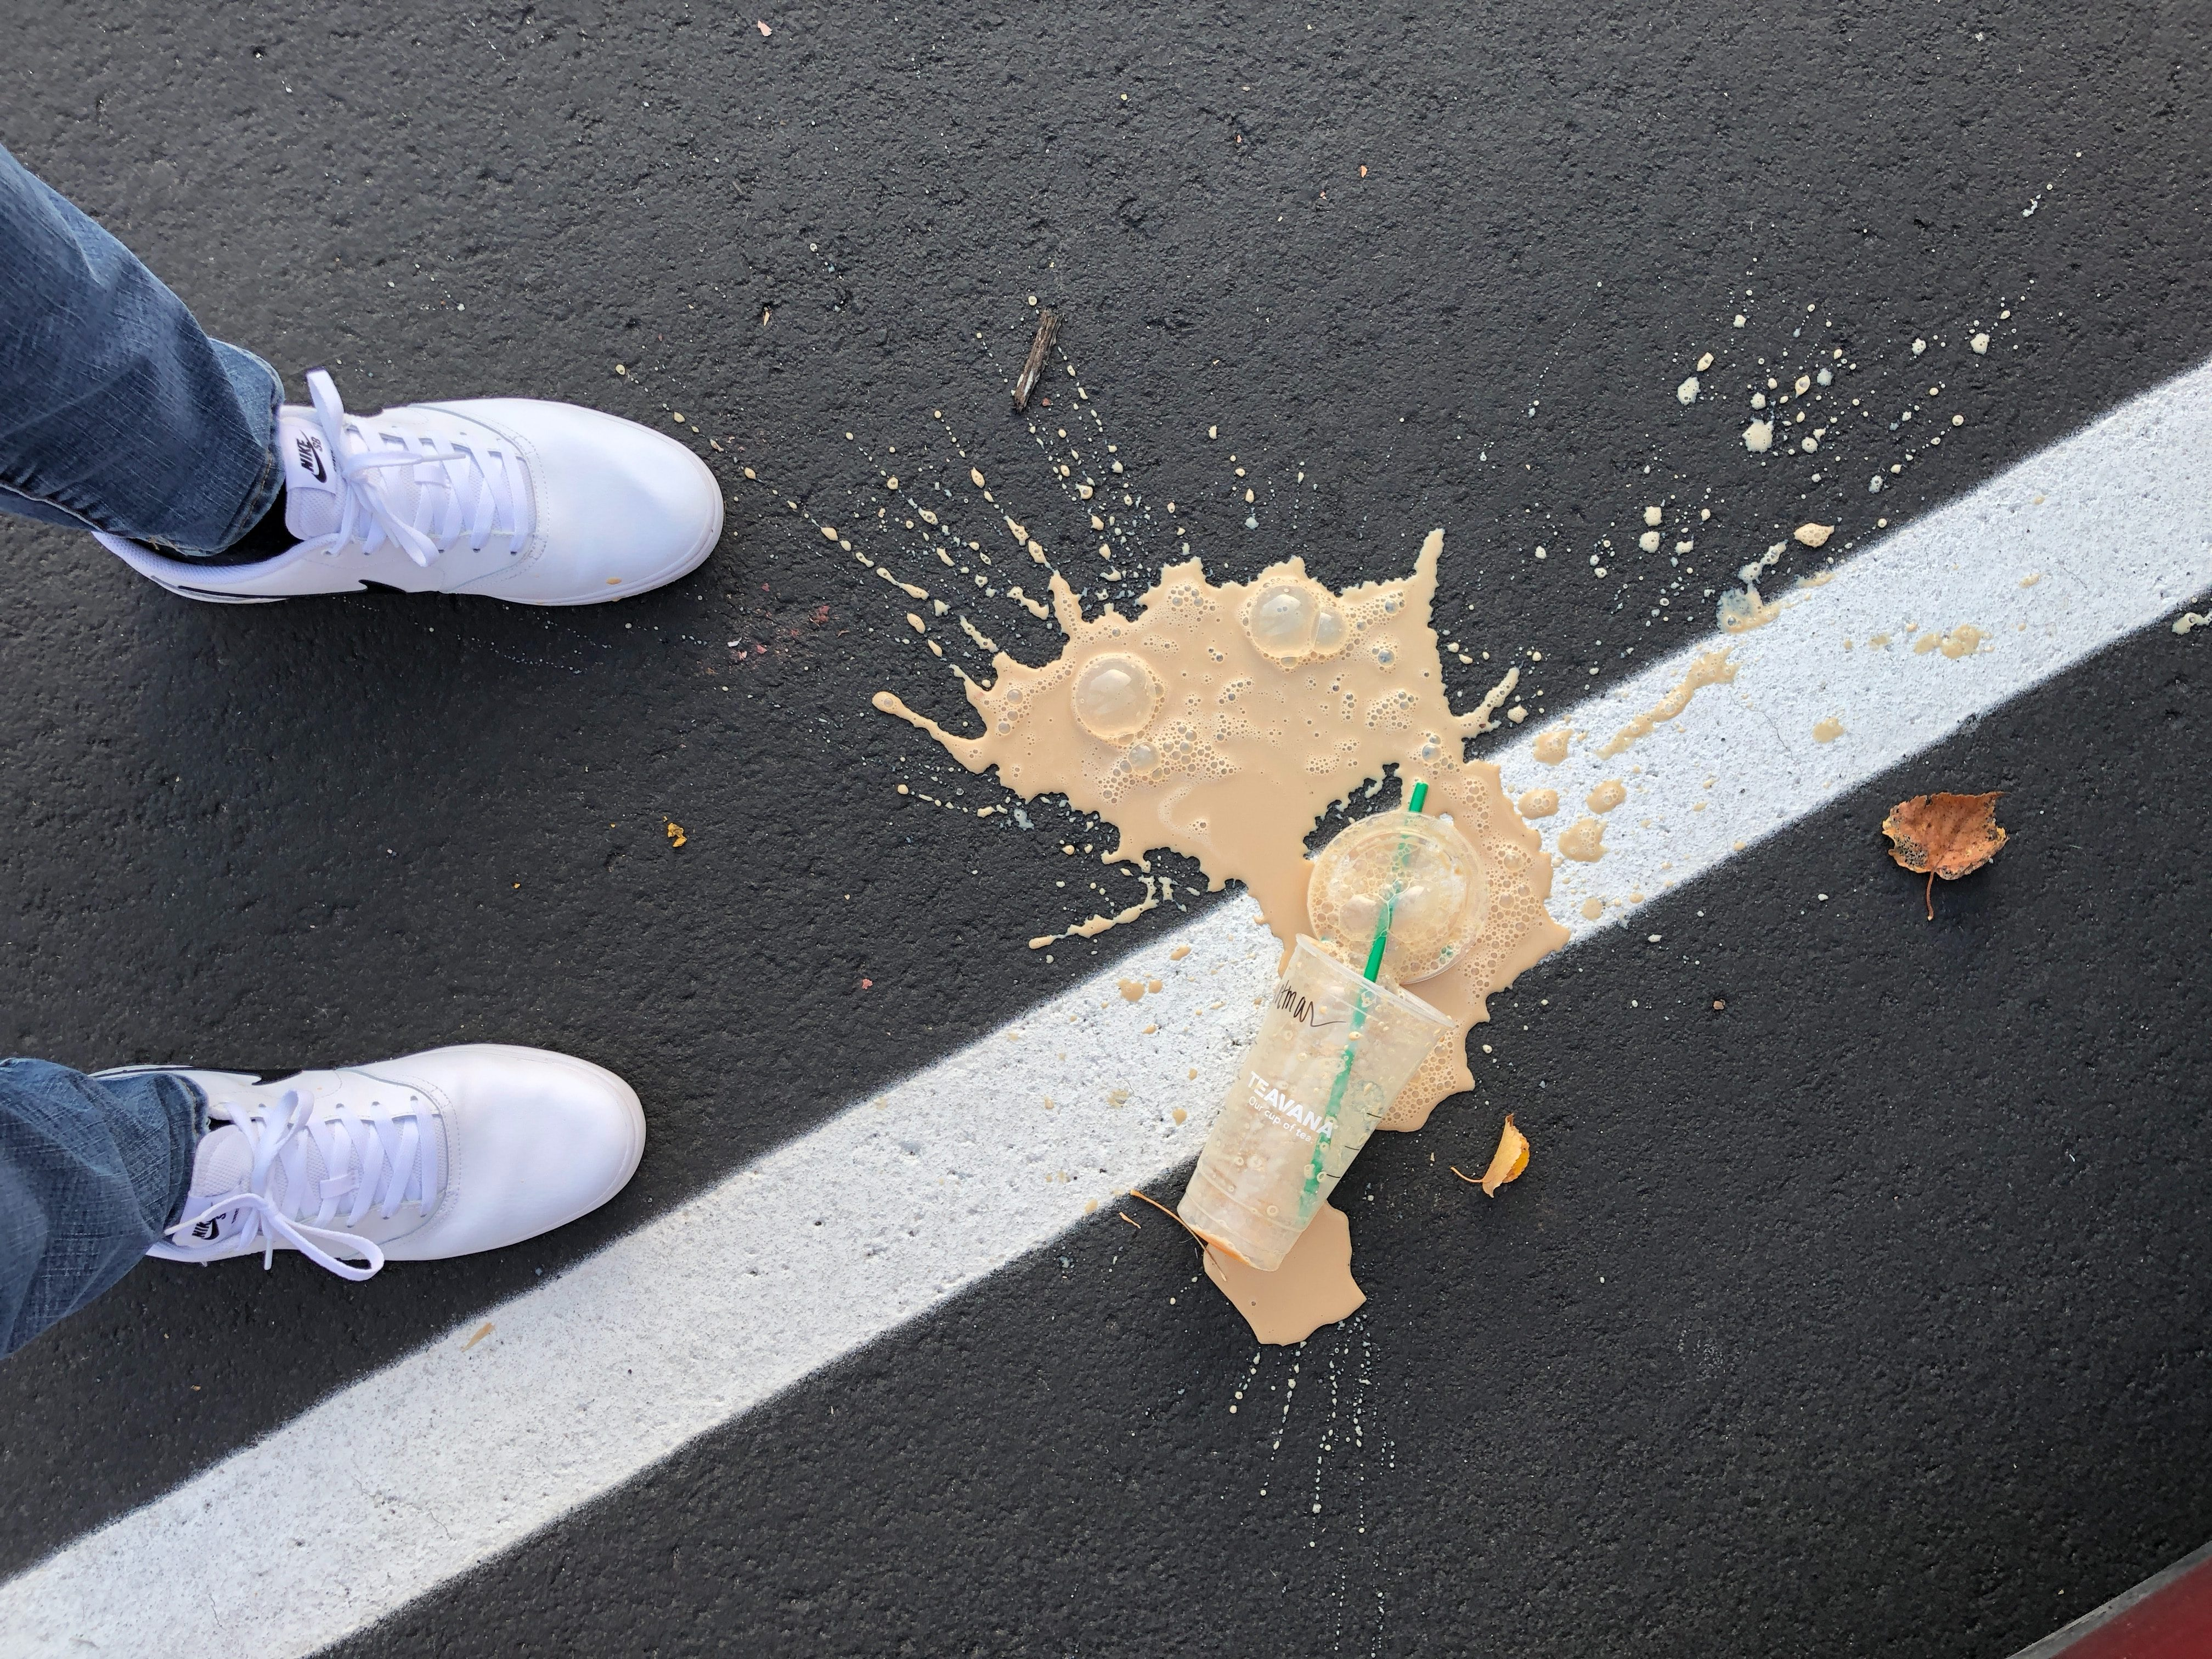 Coffee spilled on the ground in a parking lot by viewer's feet.